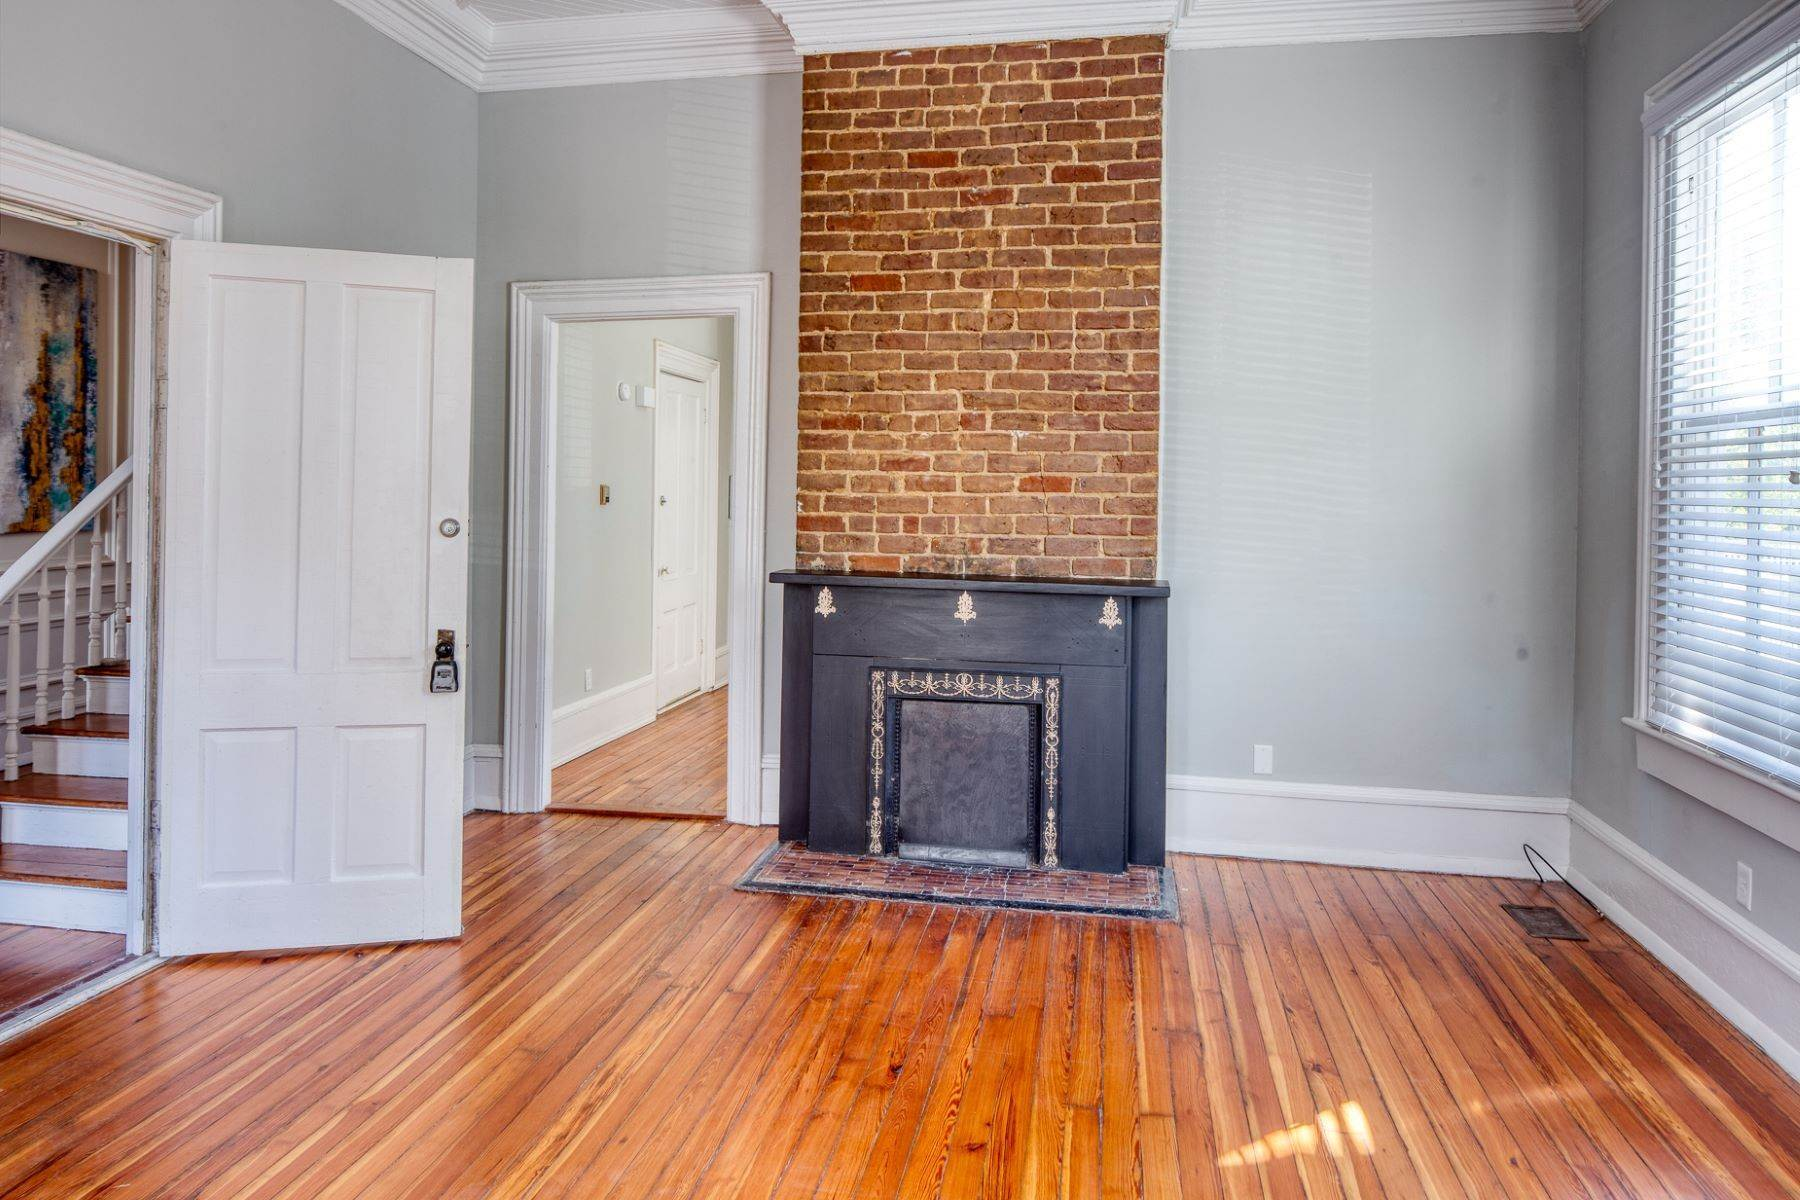 7. Property for Sale at Stunning Six Unit Victorian Apartment Building Near Forsyth Park 109 E Duffy Street Savannah, Georgia 31401 United States